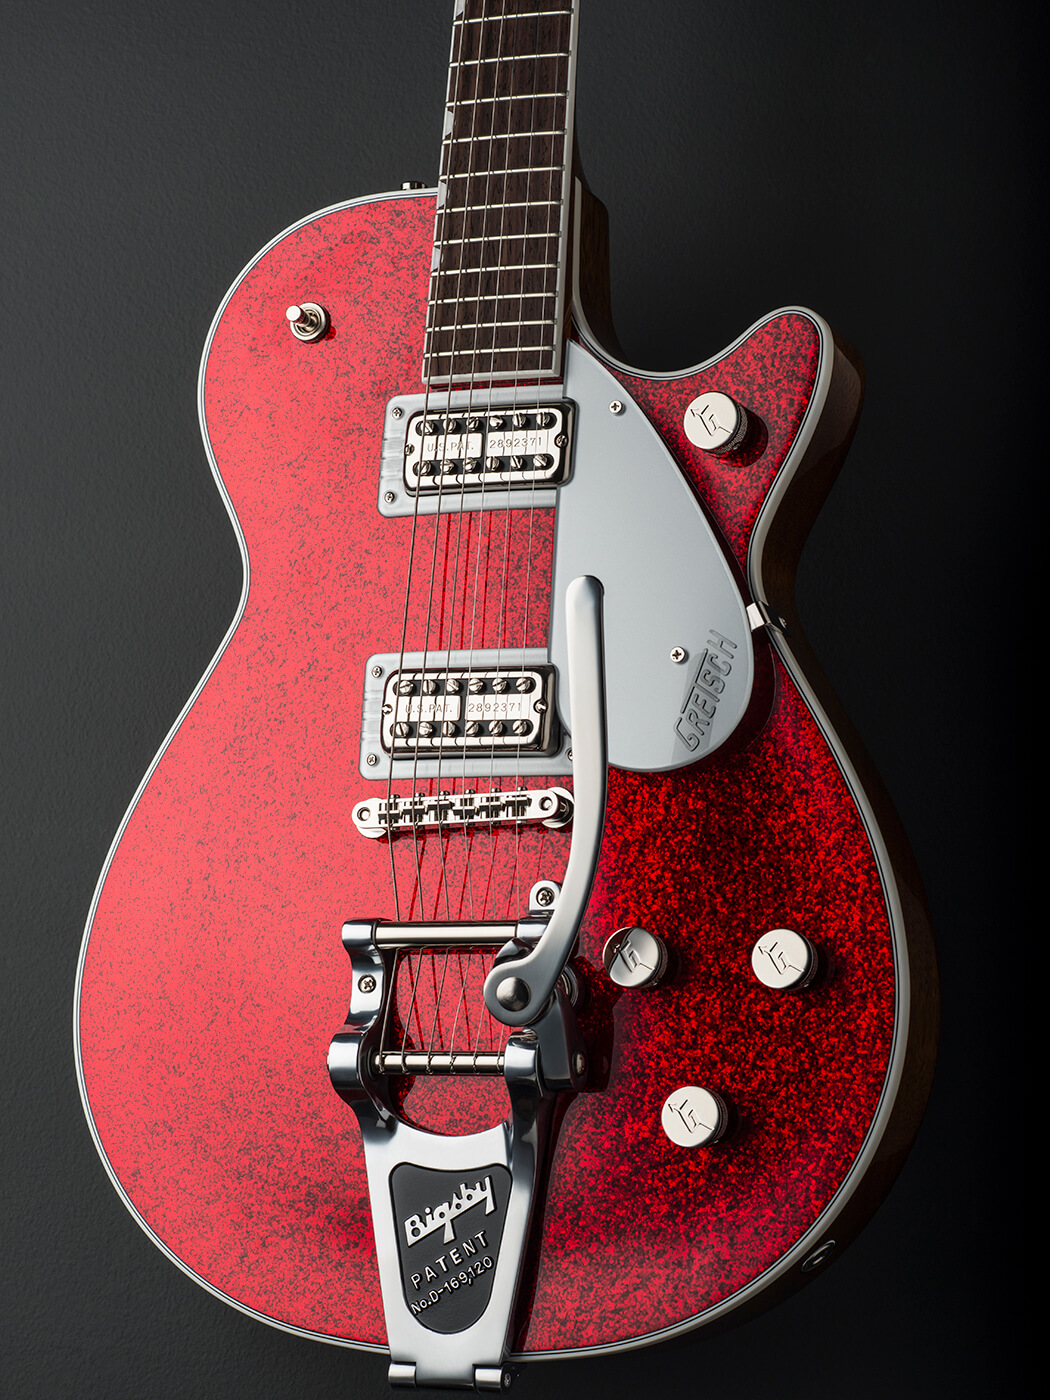 Gretsch G6129 Player's Edition Jet FT Body